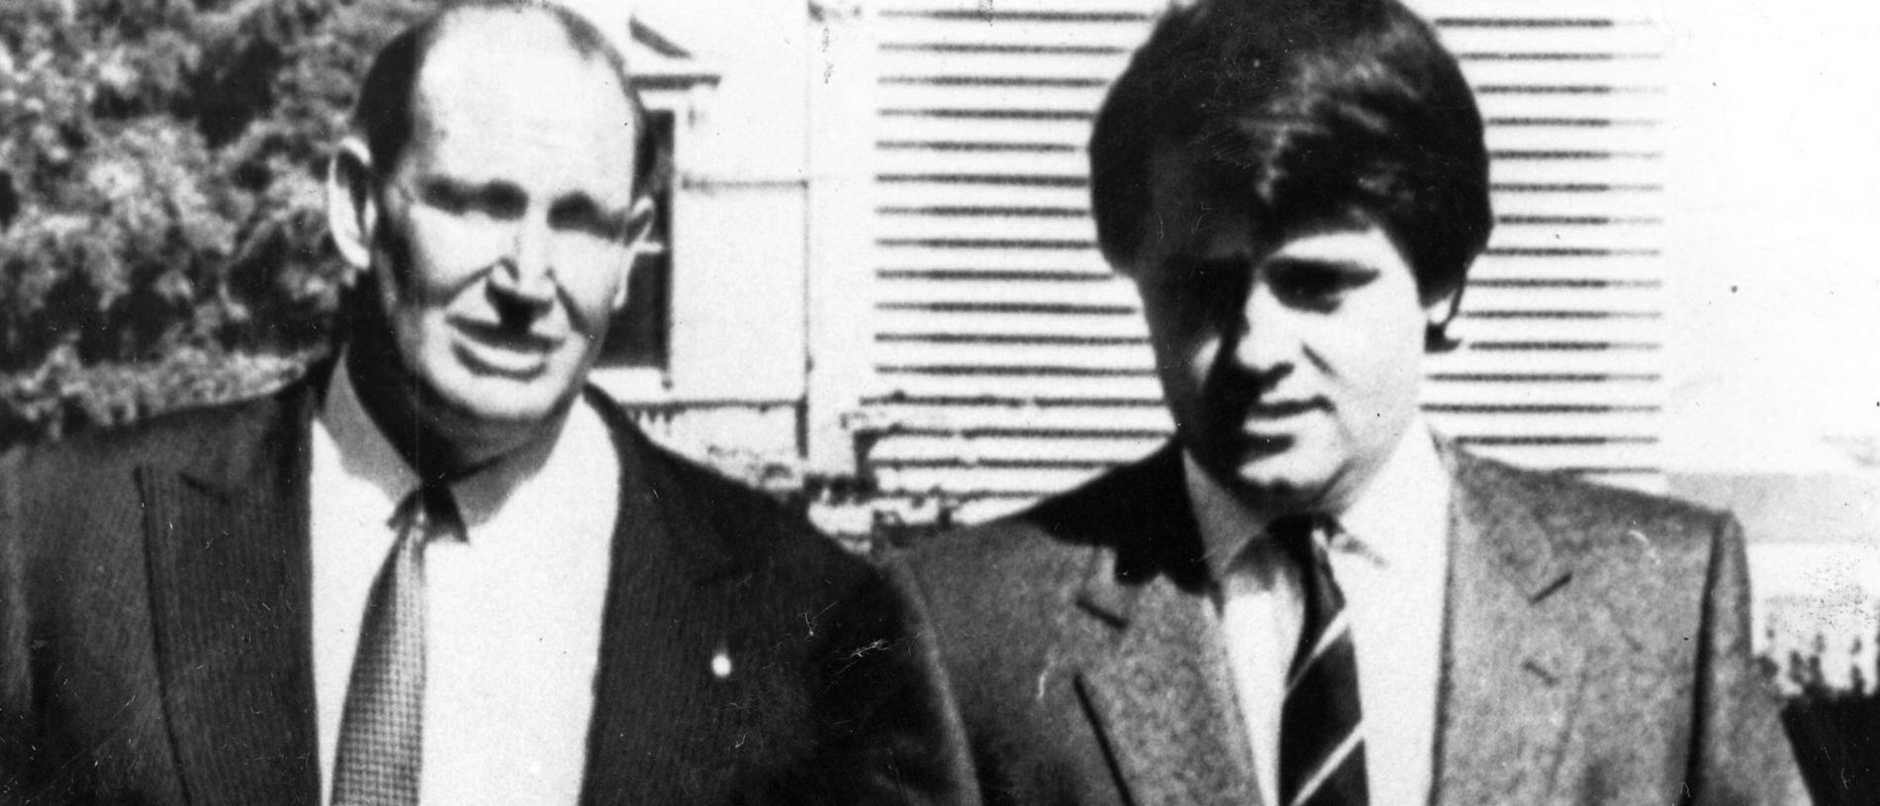 Strange bedfellows Malcolm Turnbull and Joh Bjelke-Petersen shared obscure knowledge to help mogul Kerry Packer shake 'hit' accusations, writes Des Houghton.